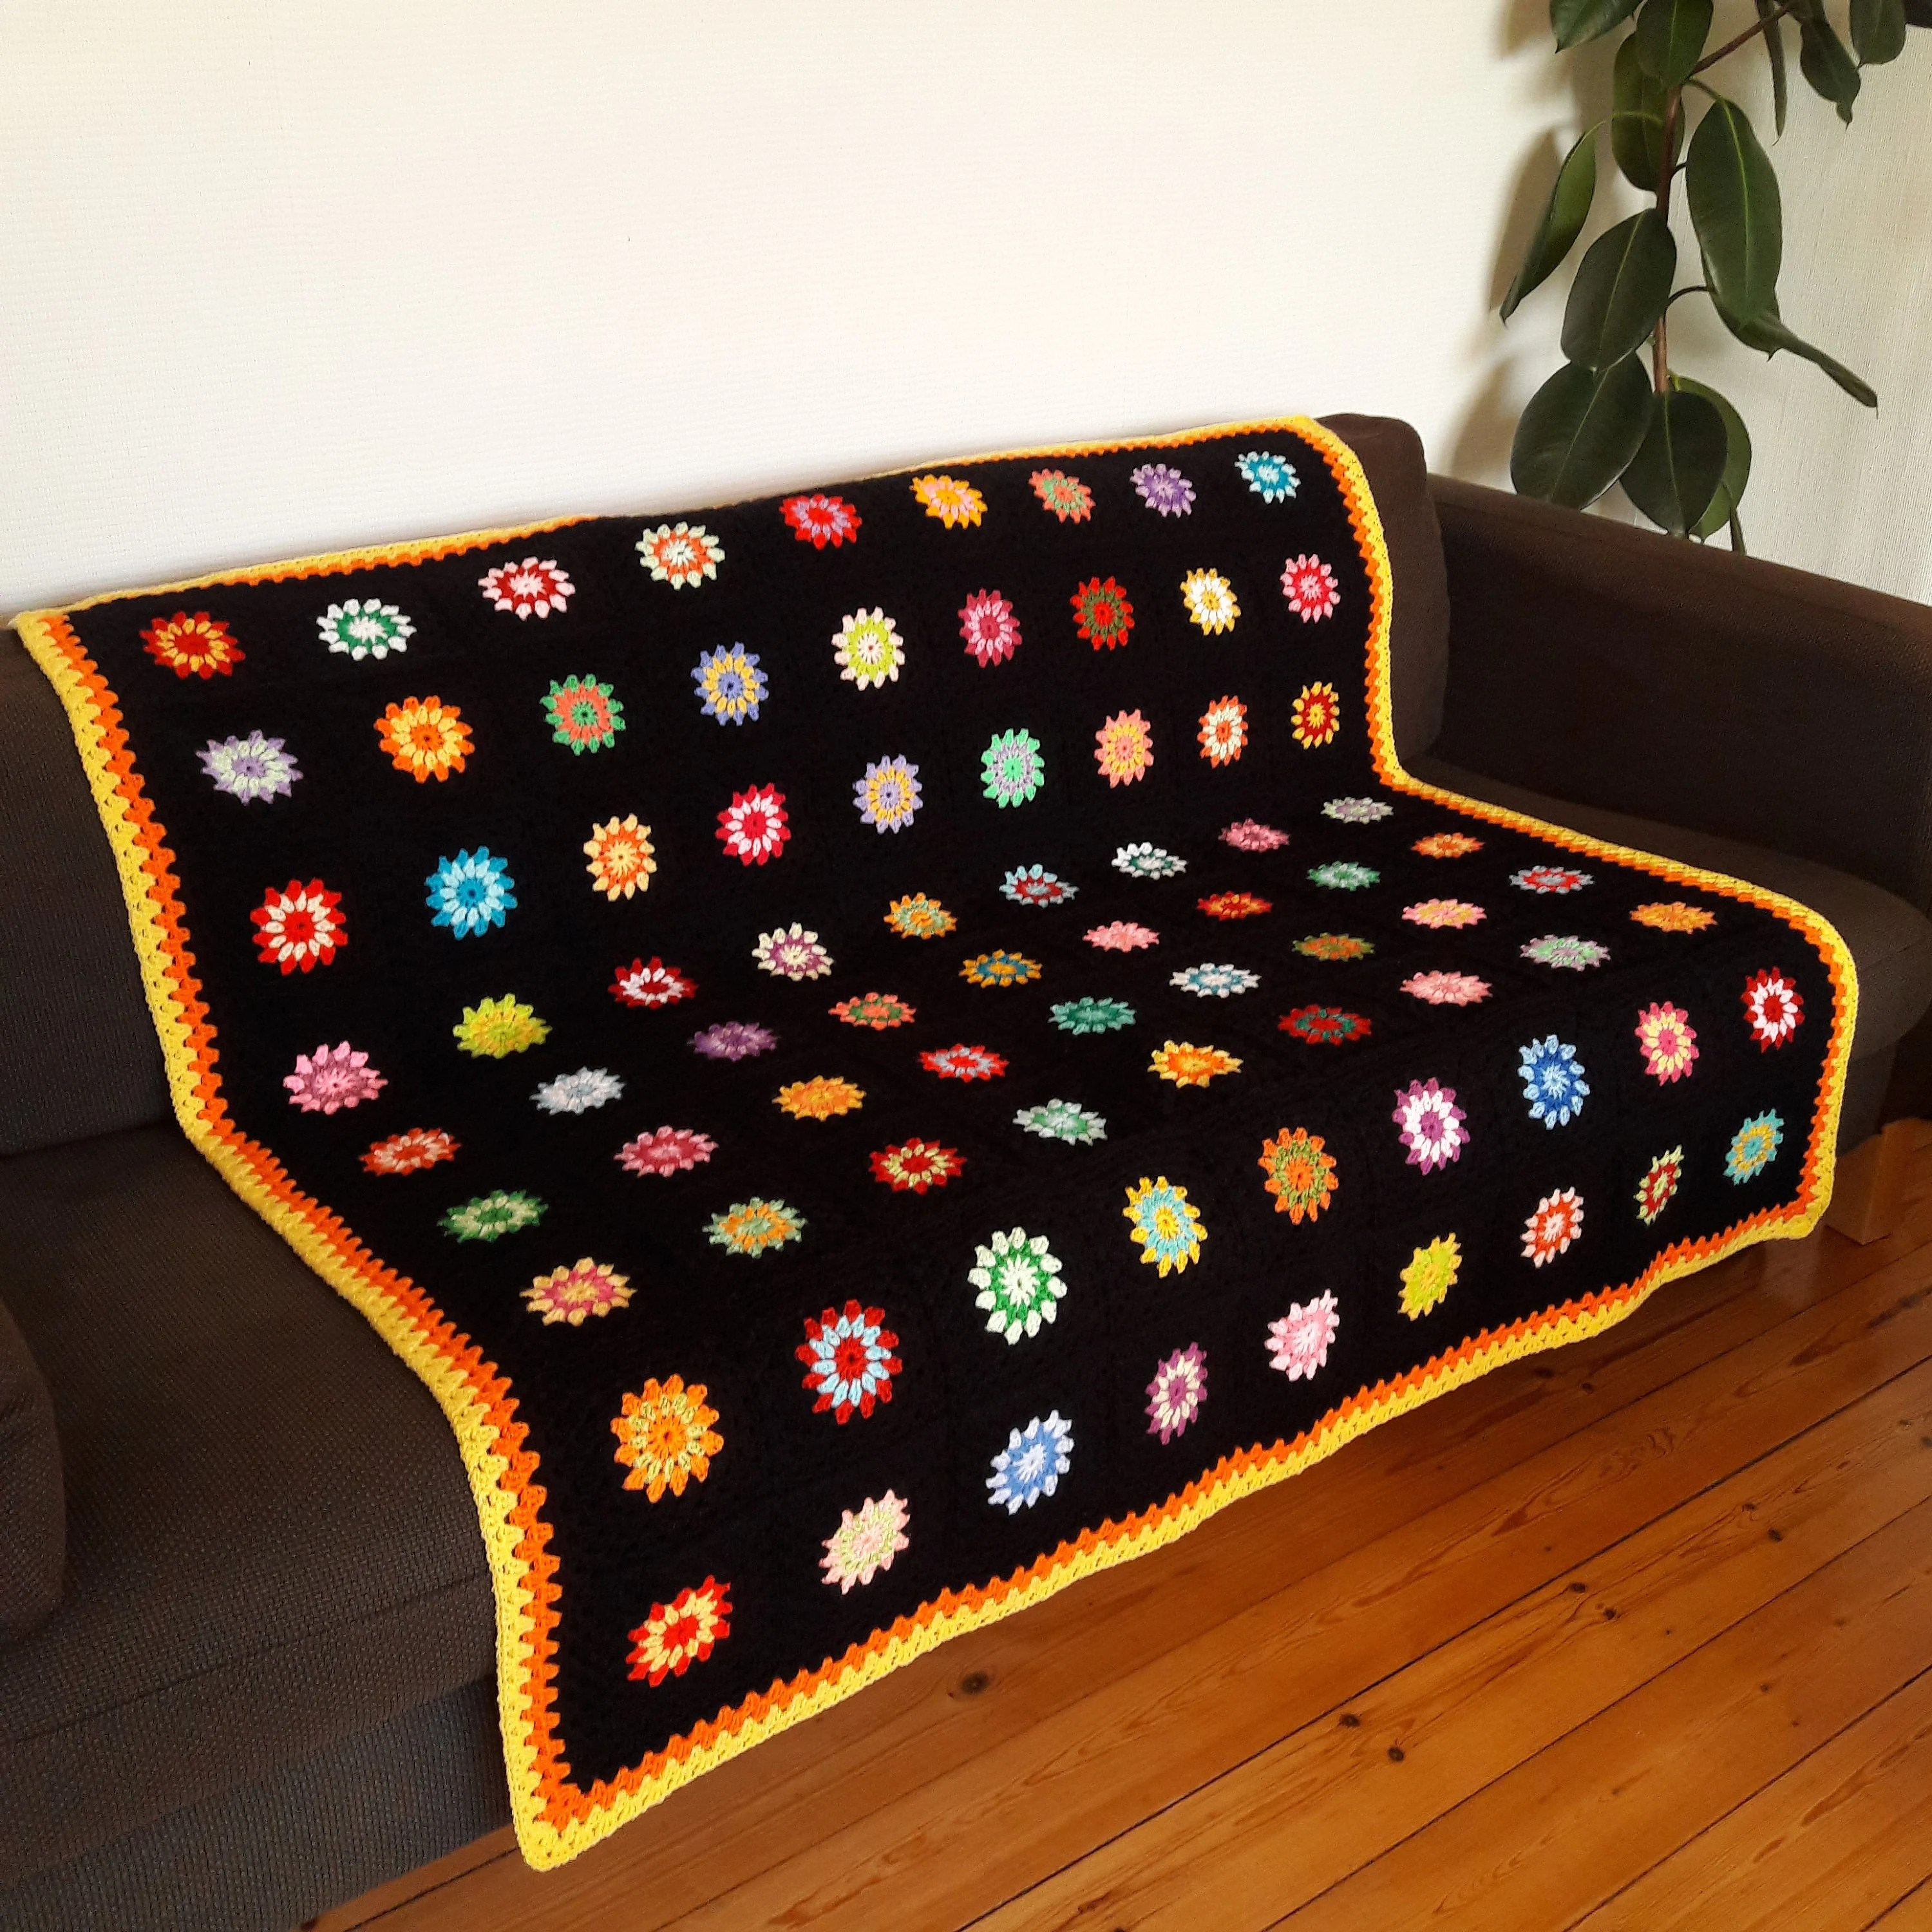 Sofa Throw Ideas Colorful Sofa Throw Unique Gift Ideas Afghan Blanket Free Shipping